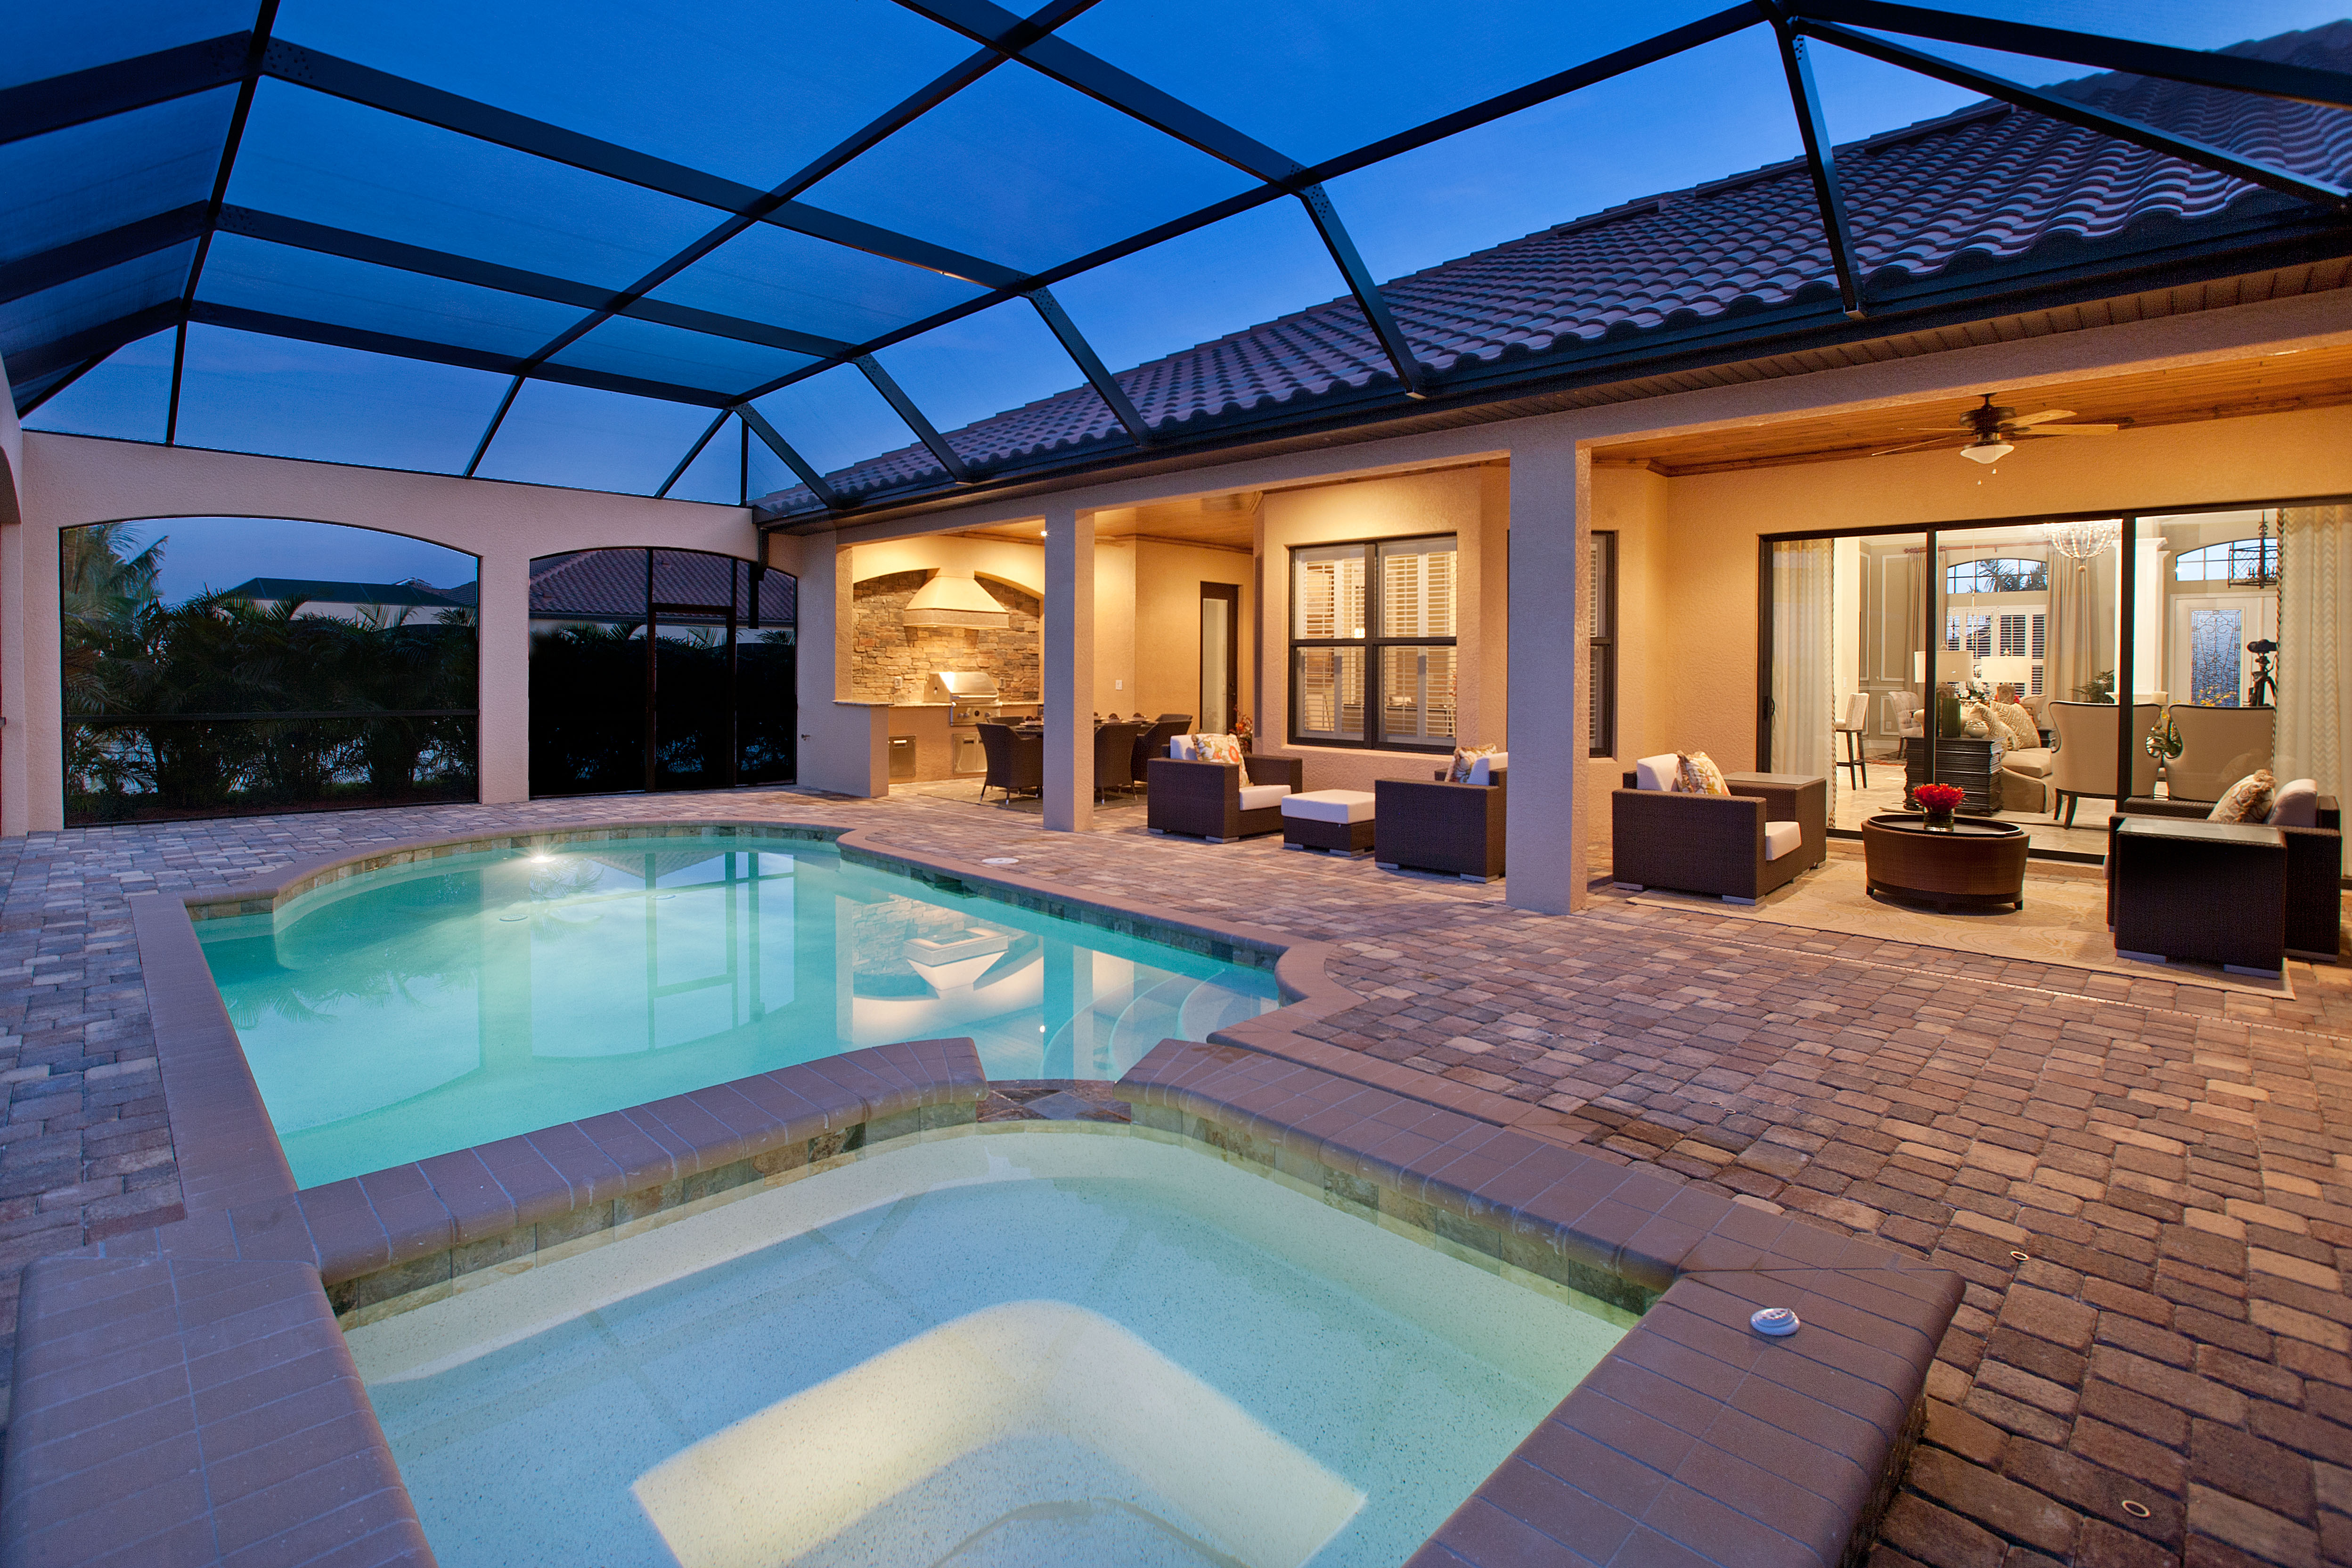 Outdoor living space florida for Cost of outdoor living space